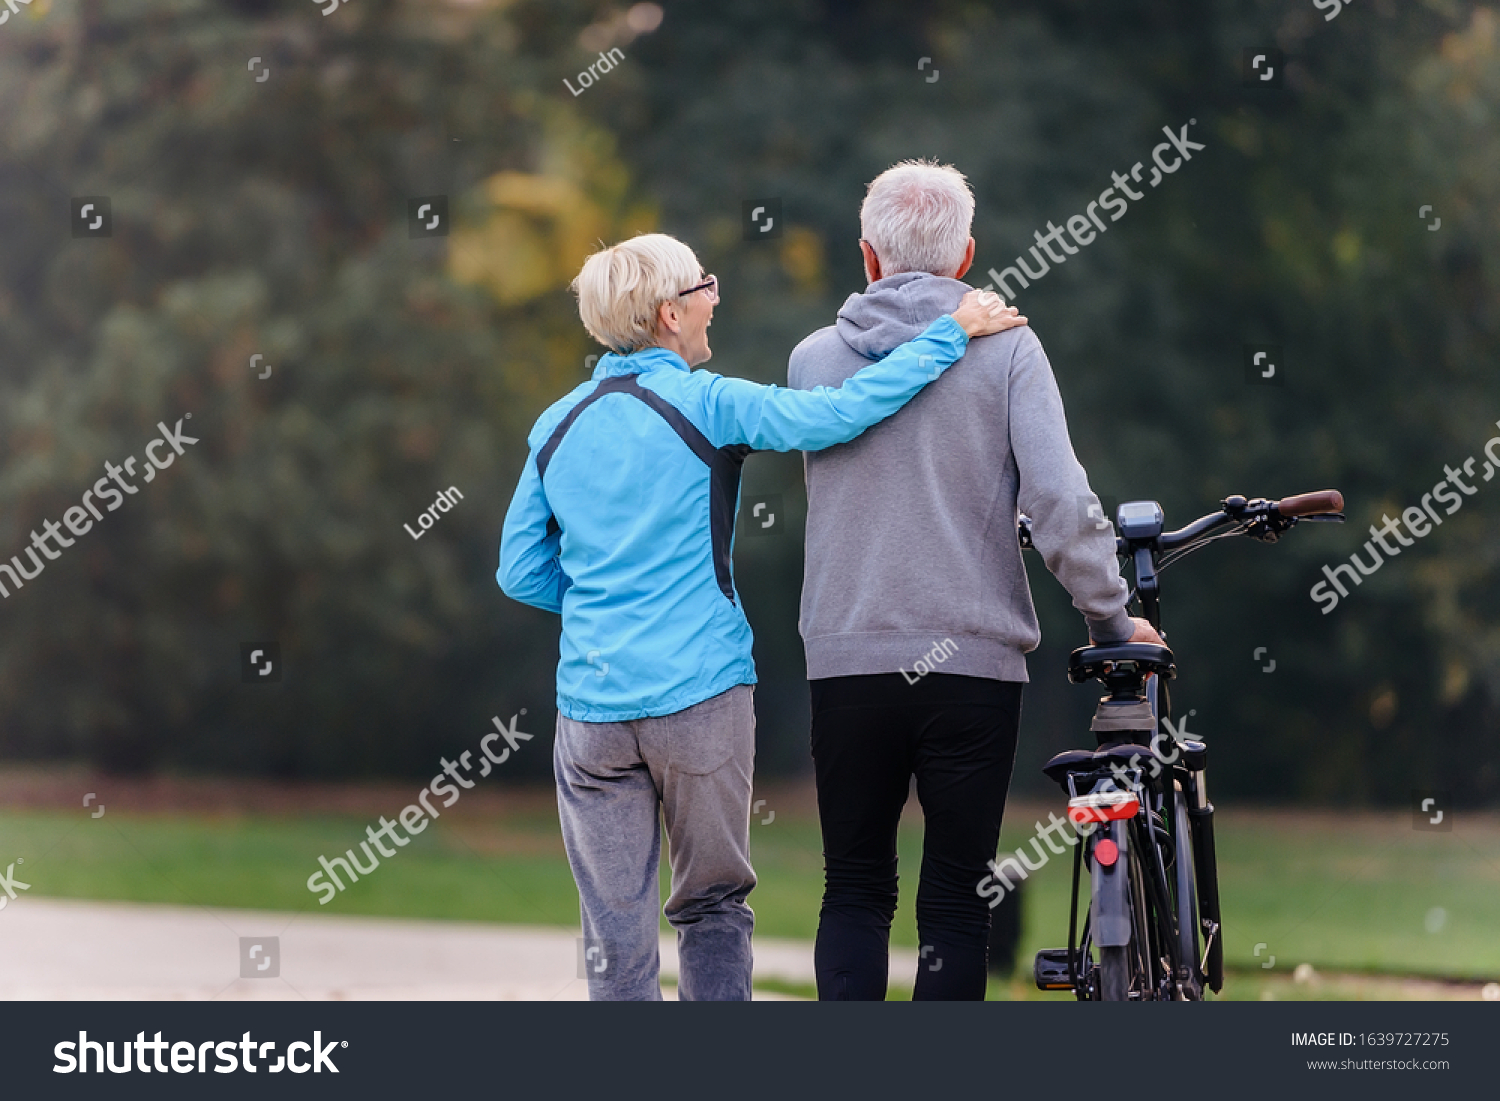 Cheerful active senior couple with bicycle walking through park together. Perfect activities for elderly people. #1639727275